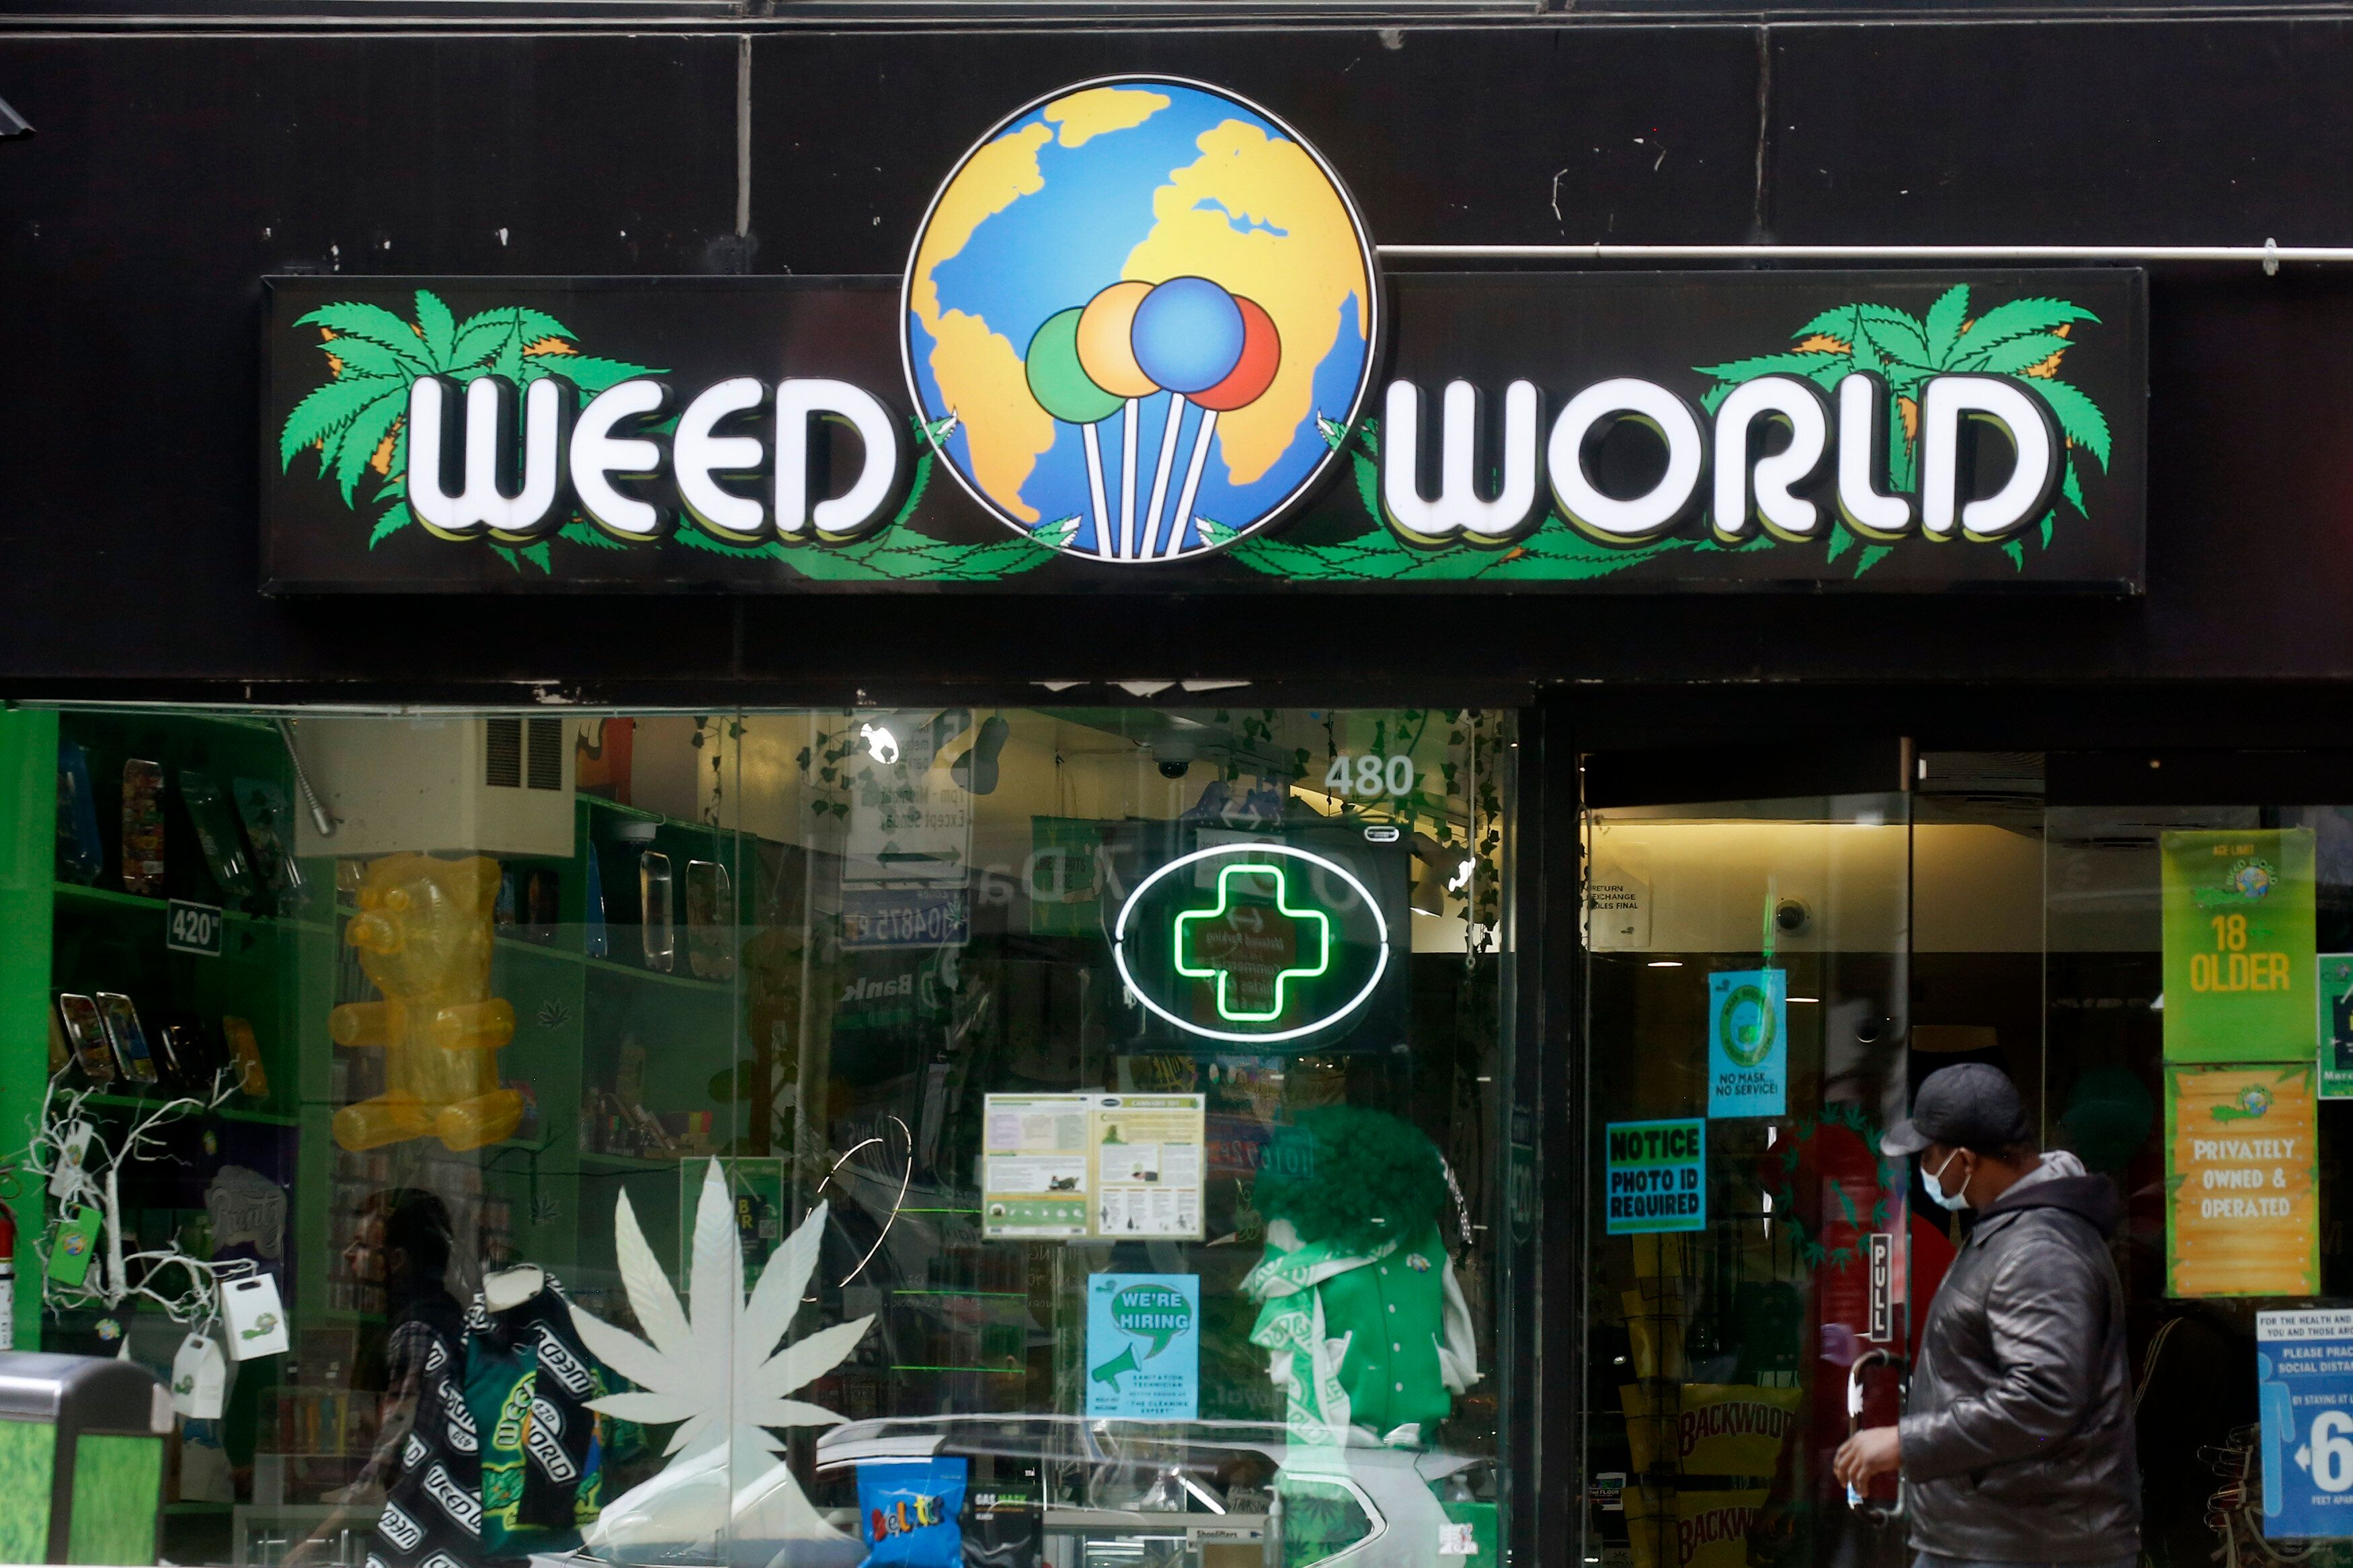 A man opens the door of the Weed World Store in New York City on Thursday. New York State has reached a deal to legalize recr